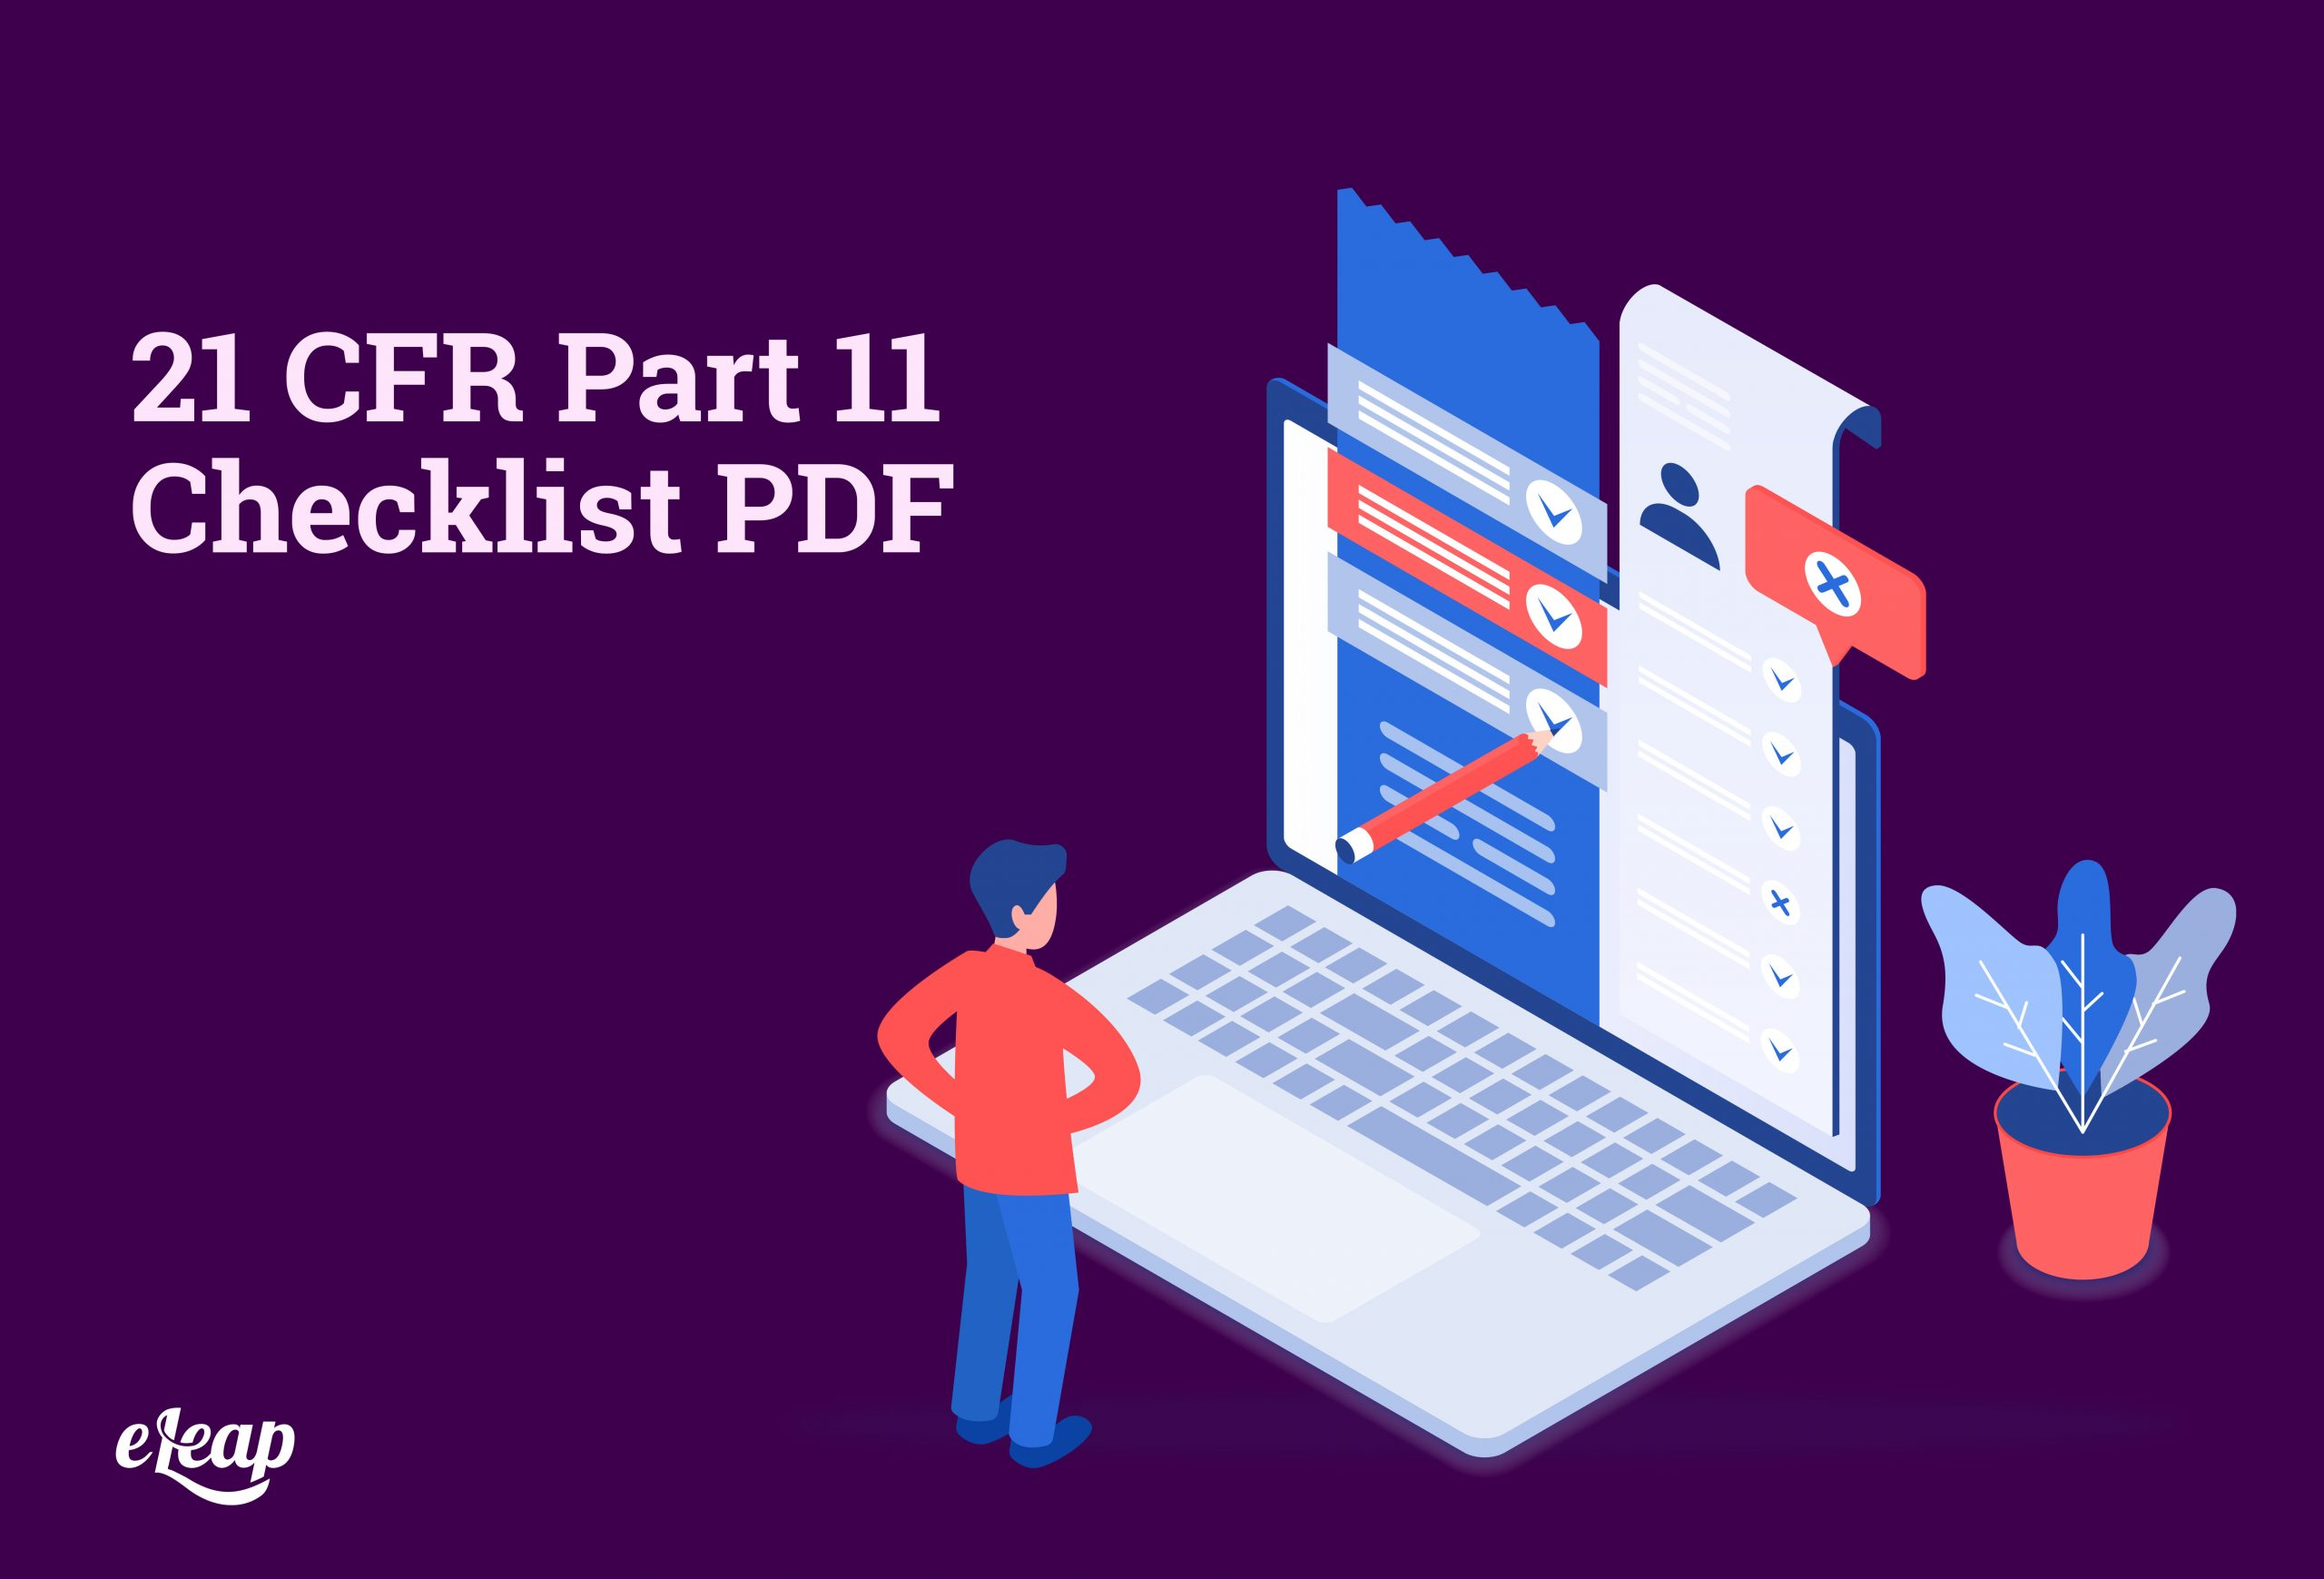 21 CFR Part 11 Checklist PDF